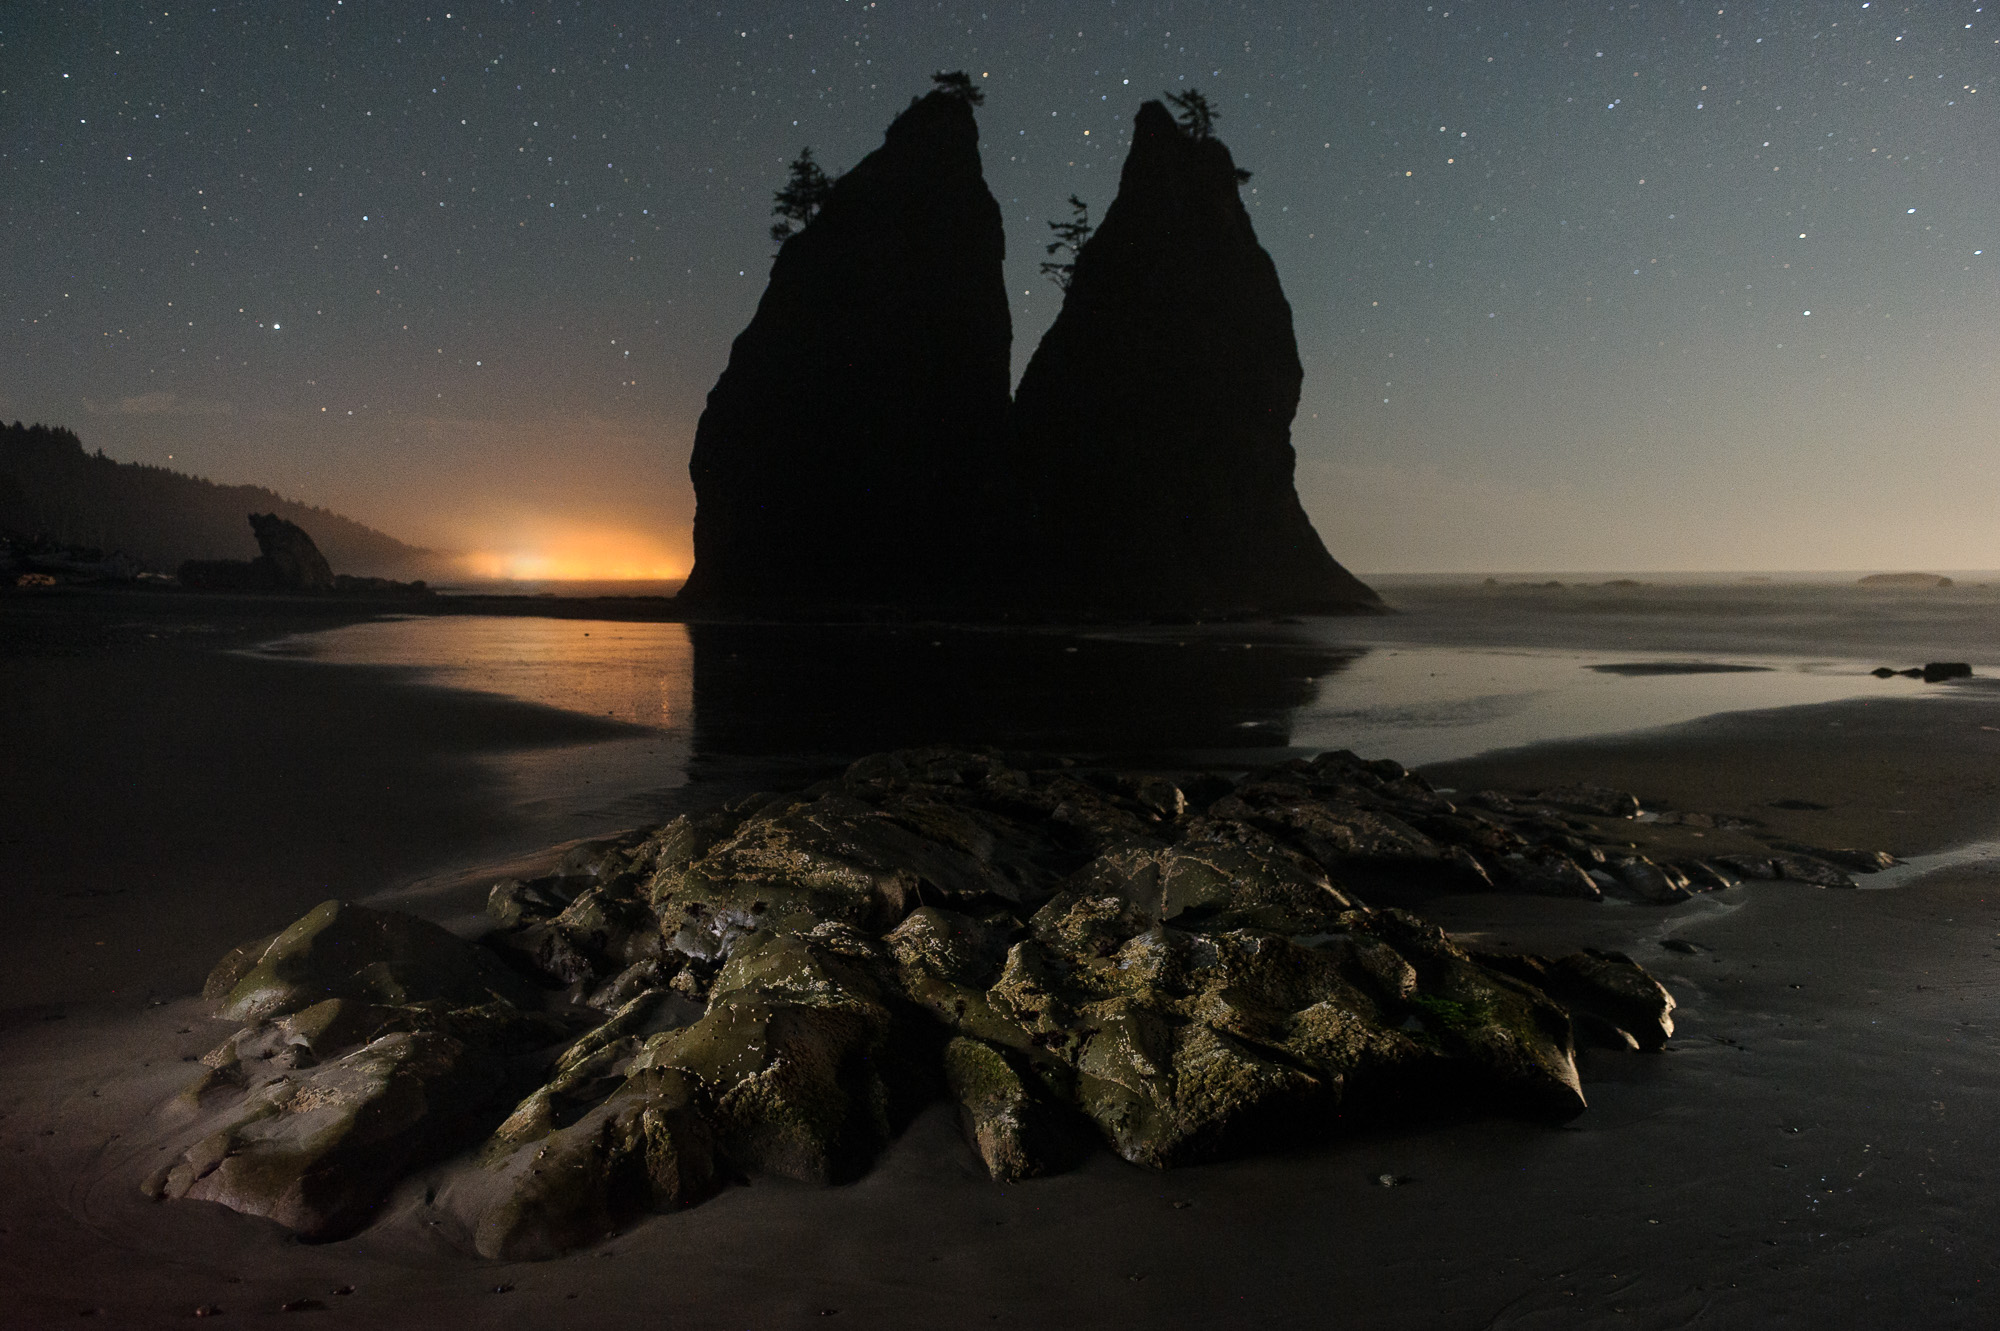 Shi Shi Beach Backcountry—COMPLETED - Hike to the shores of Shi Shi Beach in Olympic National Park, to camp under the Milky Way and photograph the sea stacks and stars.